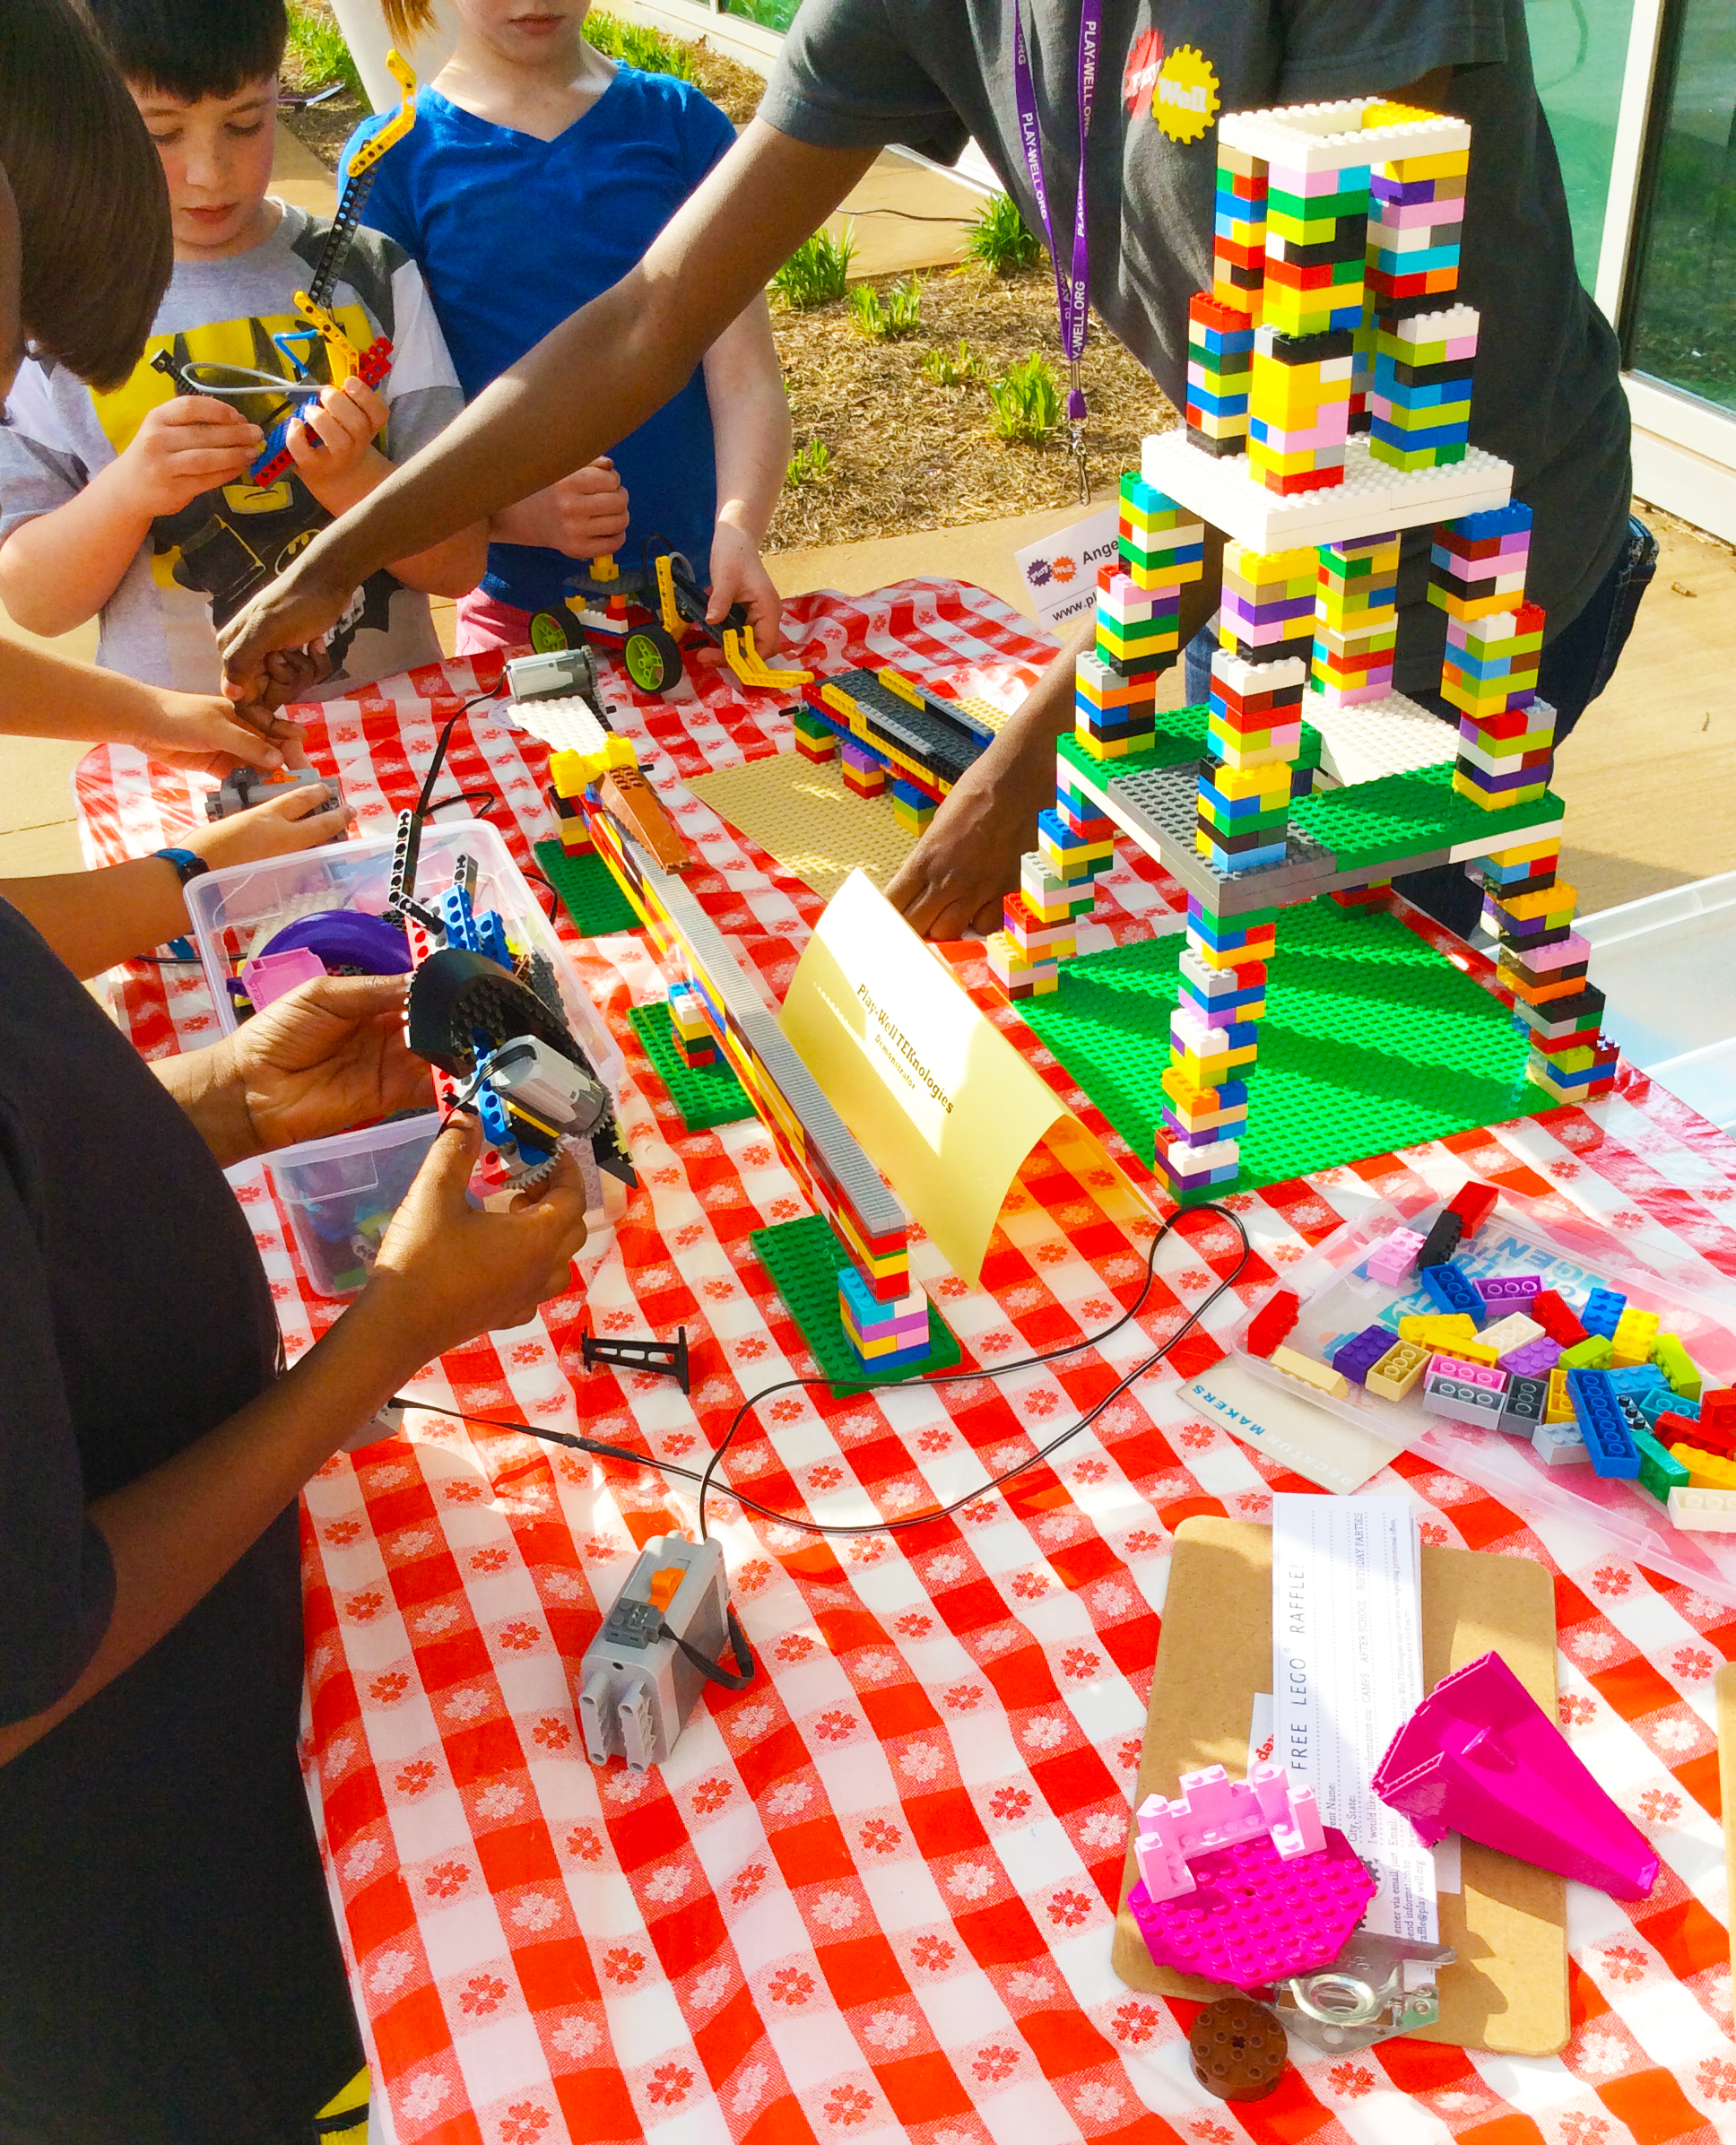 Students build with Legos during Drew Charters Designorama event.